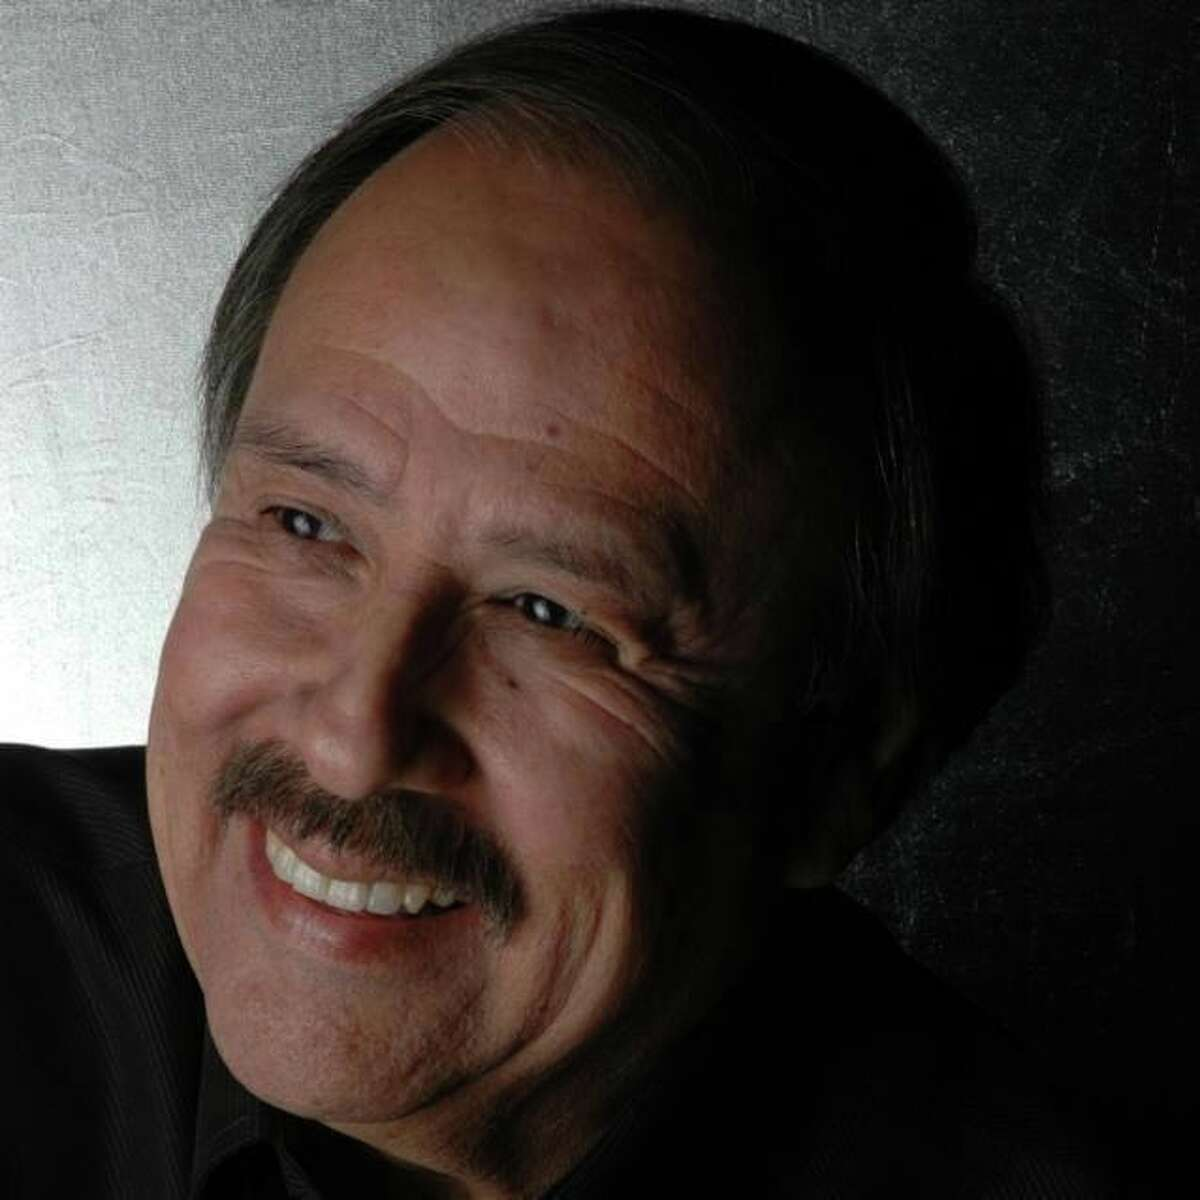 Rudy Palacios Sr., a San Antonio Tejano music legend who played with the popular music group Sunny & the Sunliners, died from complications of the the novel coronavirus on July 8 at Methodist Hospital, according to family members. He was 74.